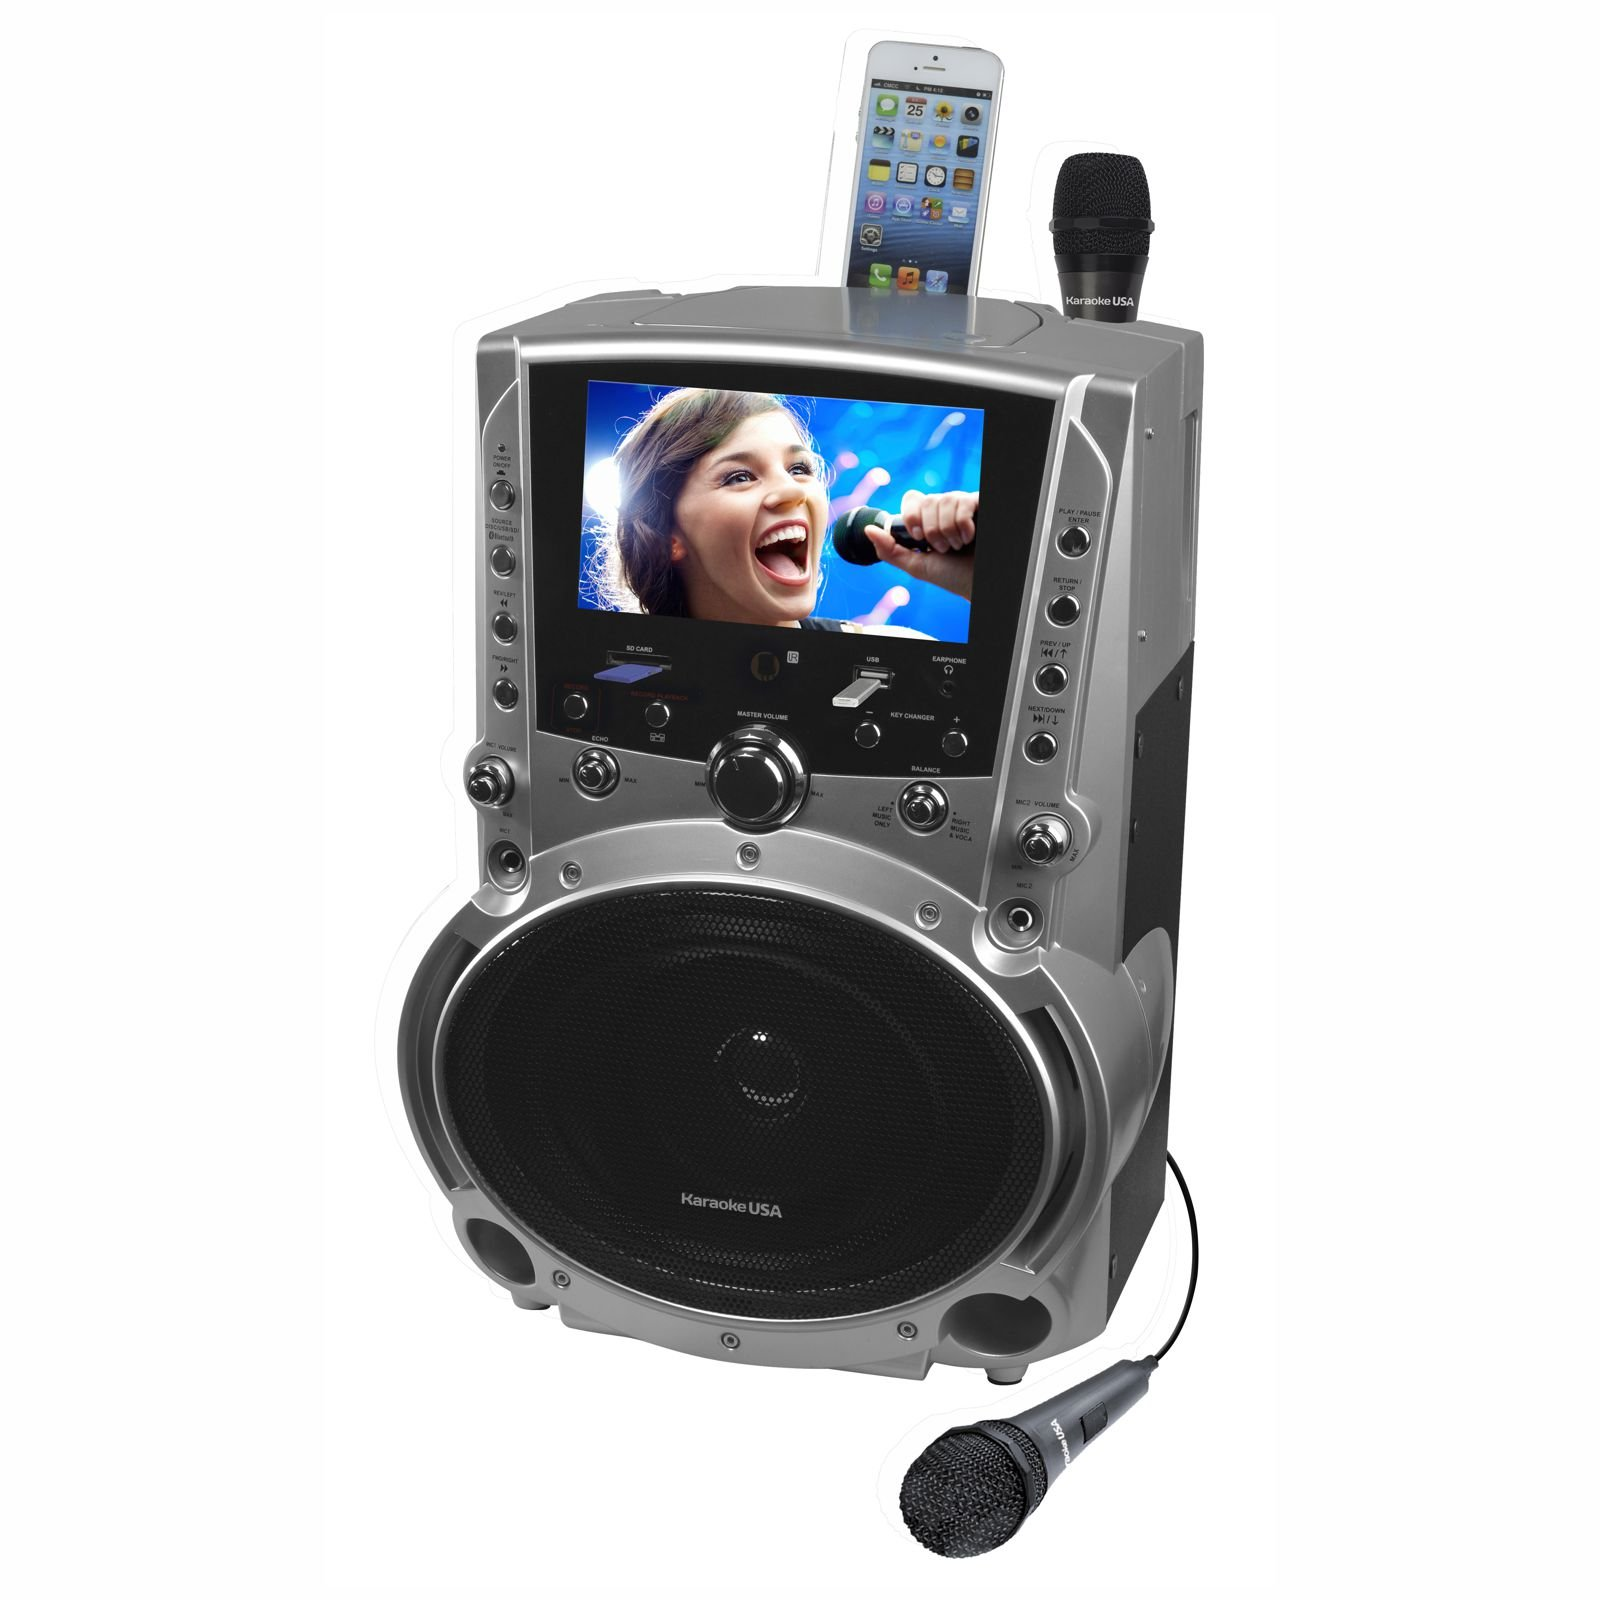 Karaoke USA GF757 50 Watt Bluetooth DVD CD+G MP3+G Karaoke System with 7-Inch TFT Color Screen and Record Function